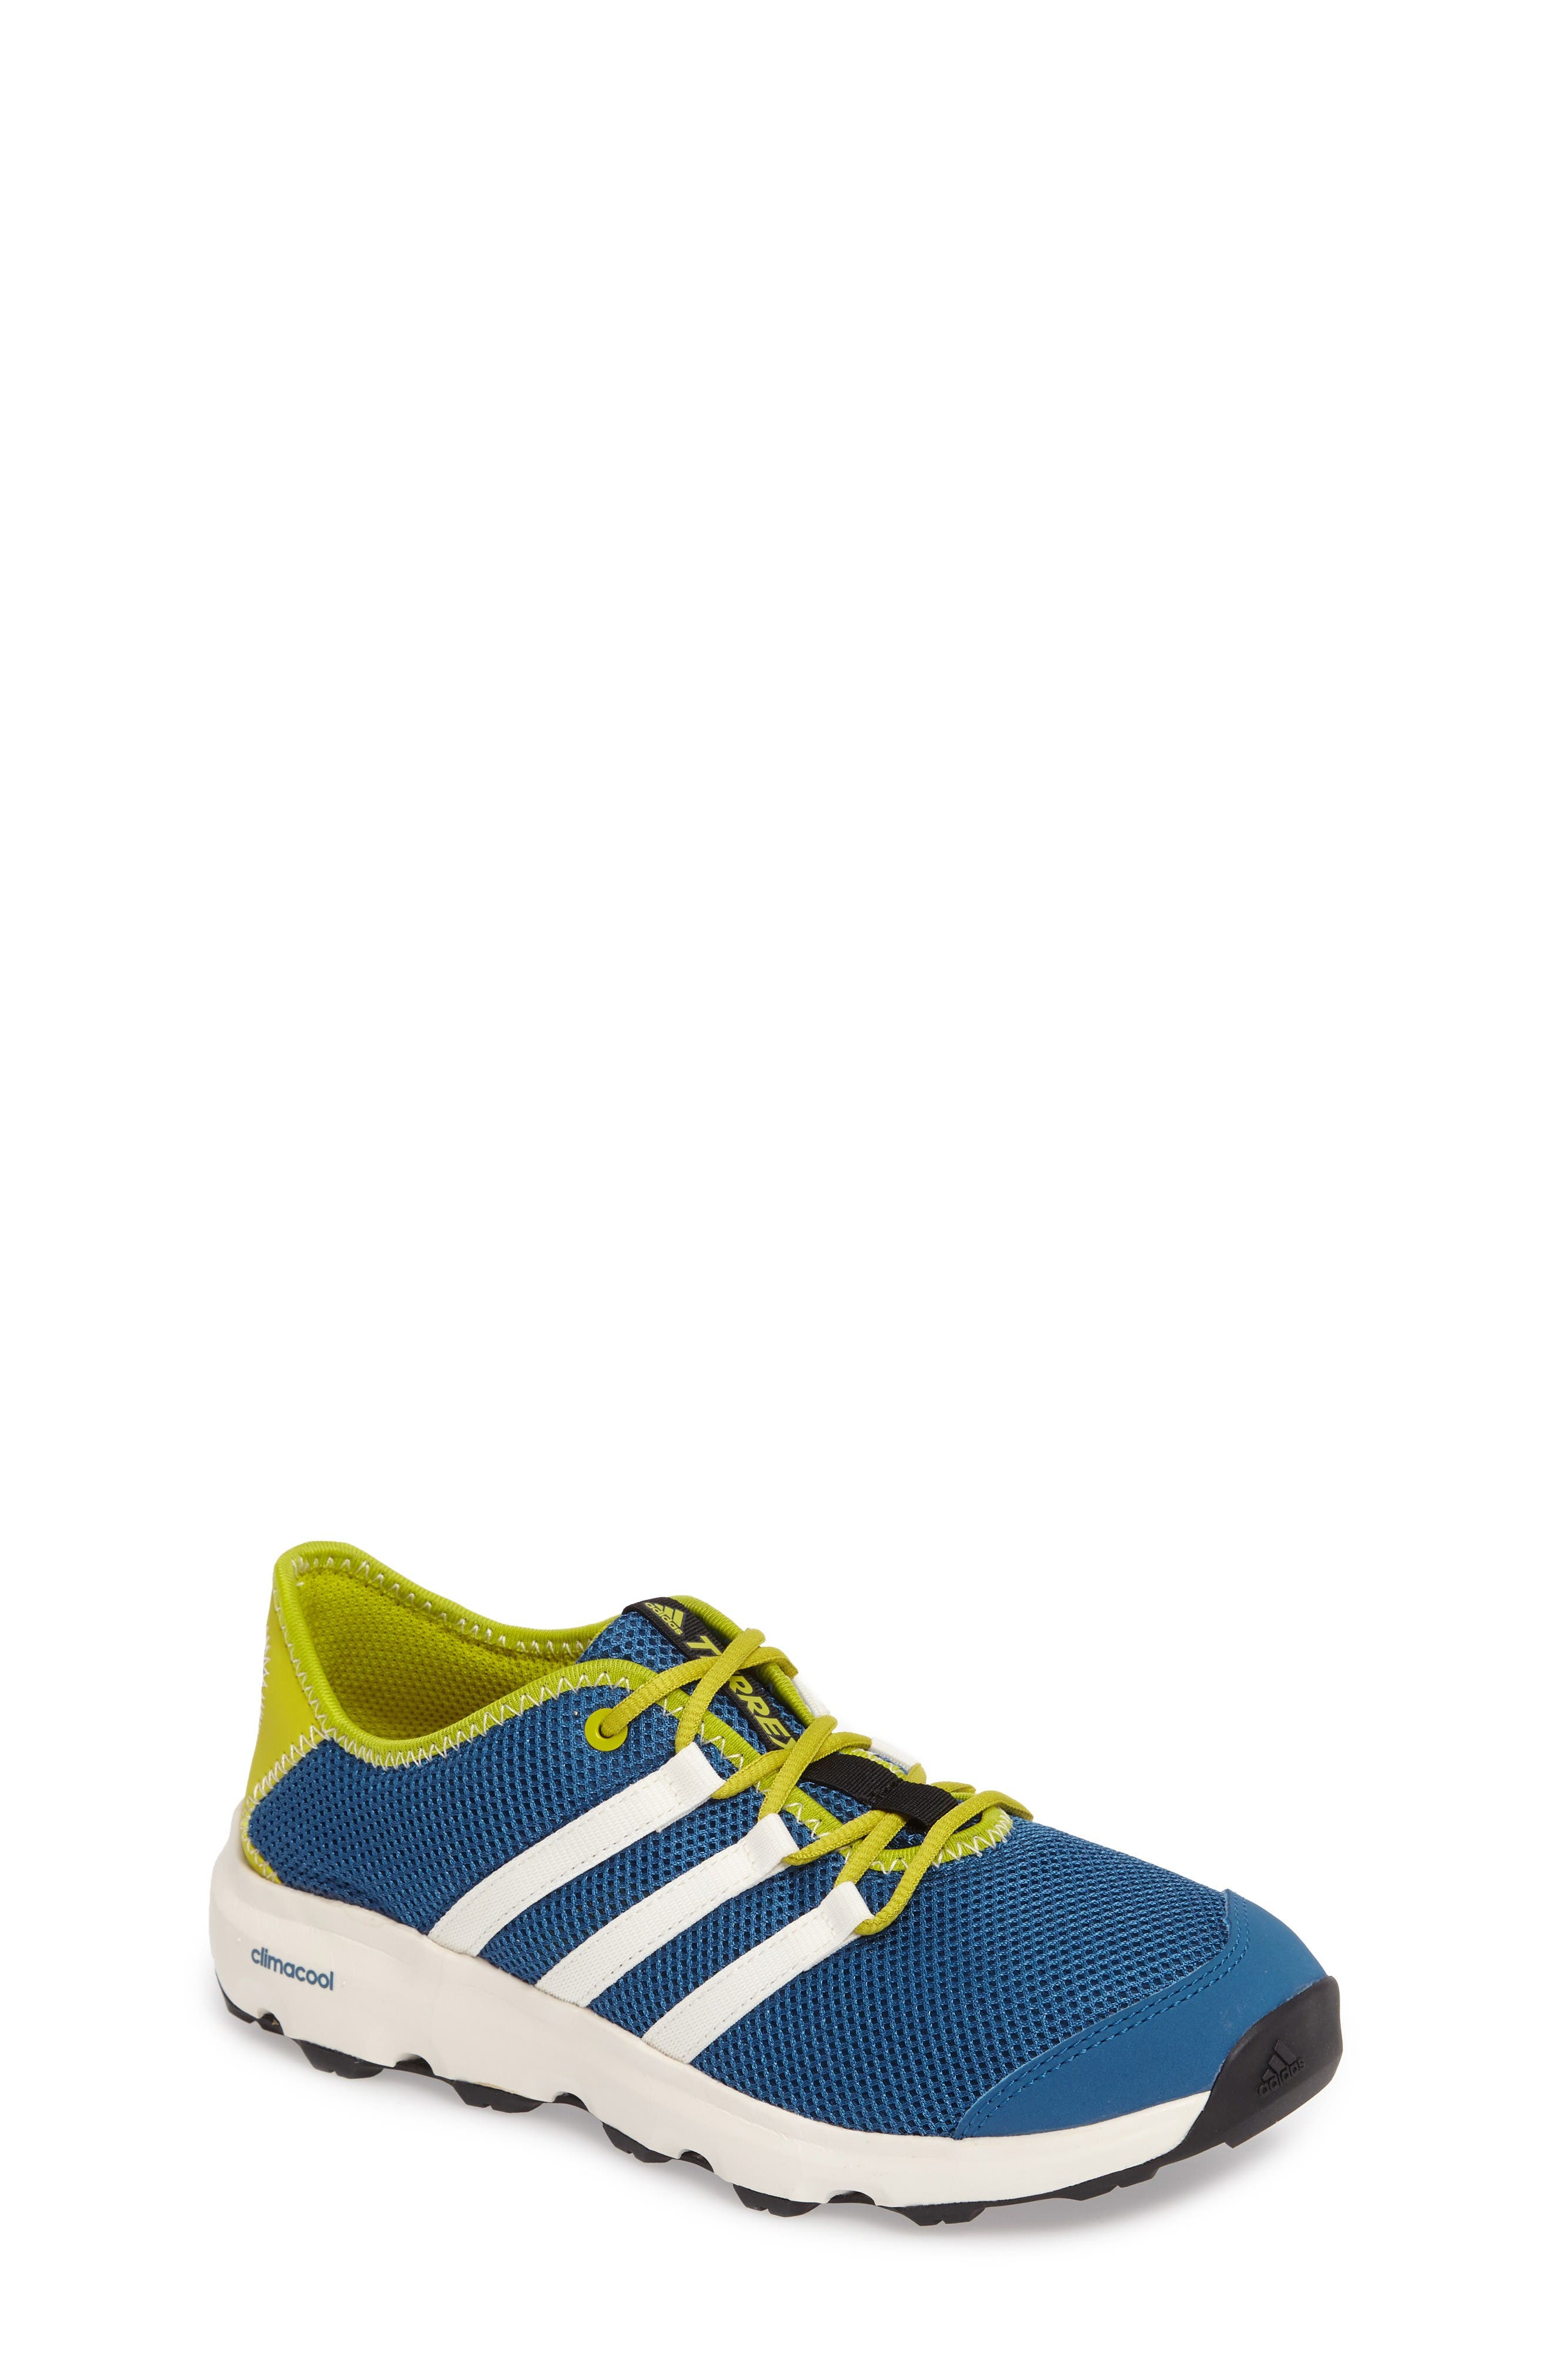 Terrex Climacool<sup>®</sup> Voyager Sneaker,                         Main,                         color, Core Blue/ Chalk White/ Lime